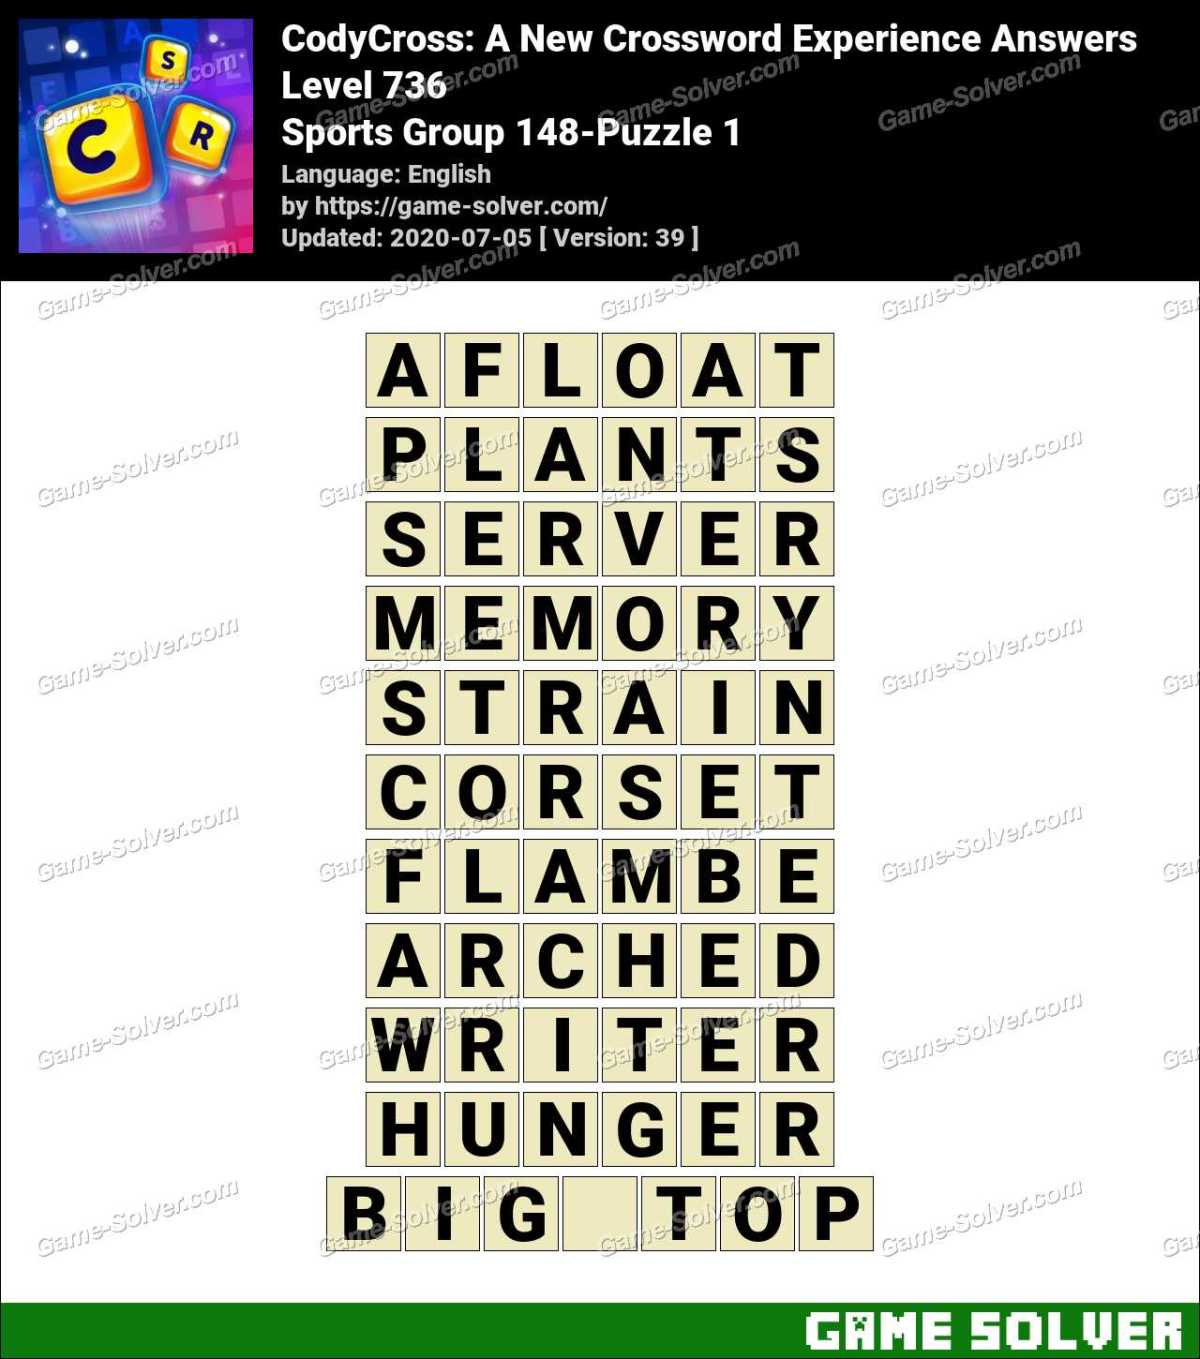 CodyCross Sports Group 148-Puzzle 1 Answers